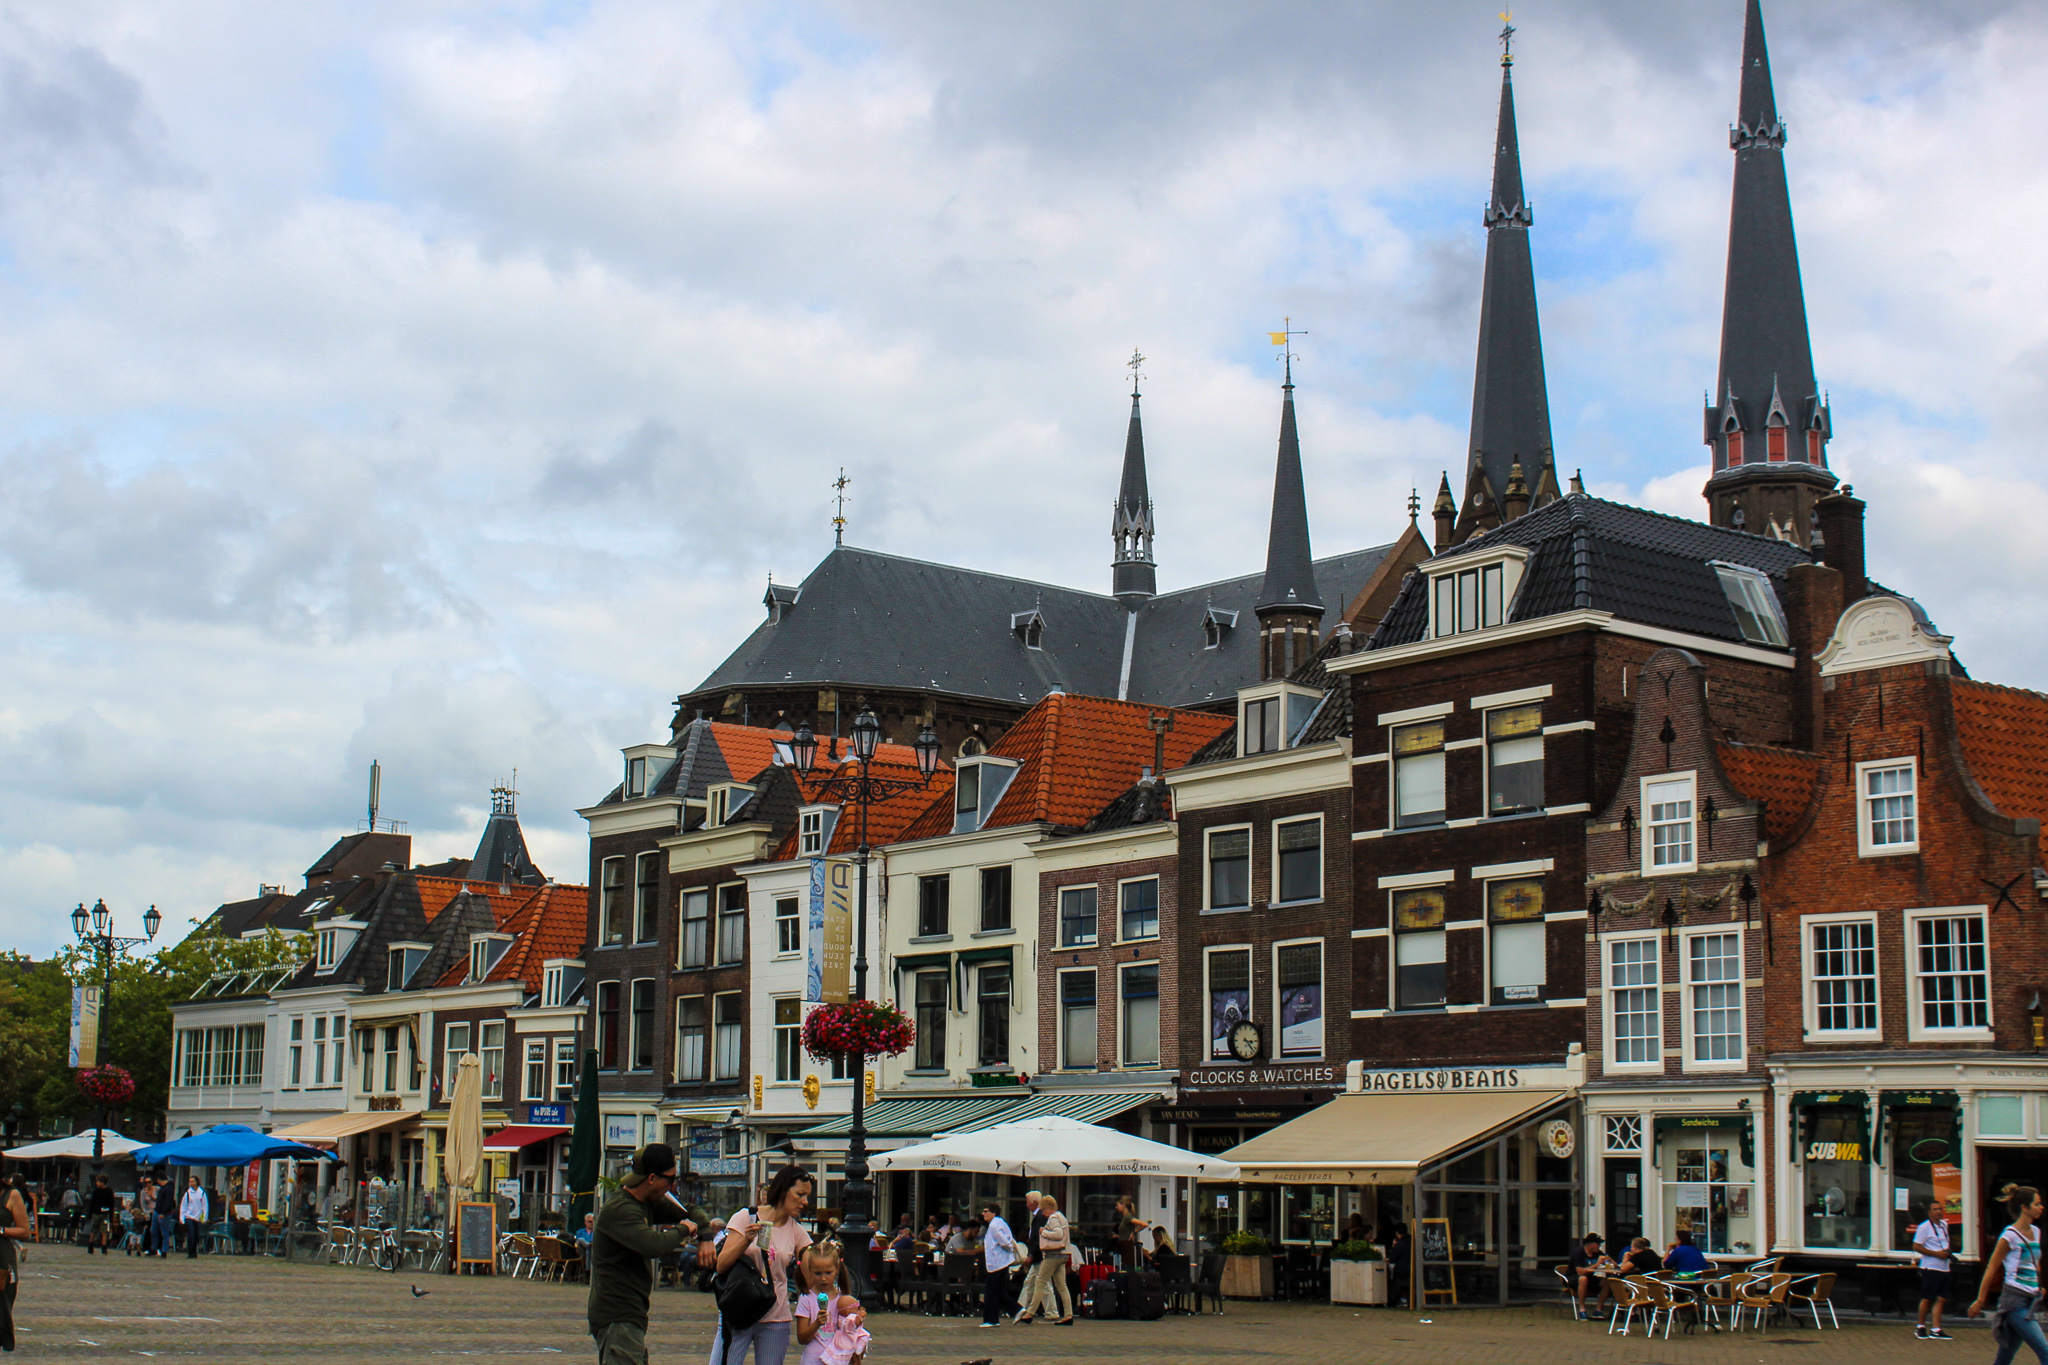 visiting delft? go to the main square